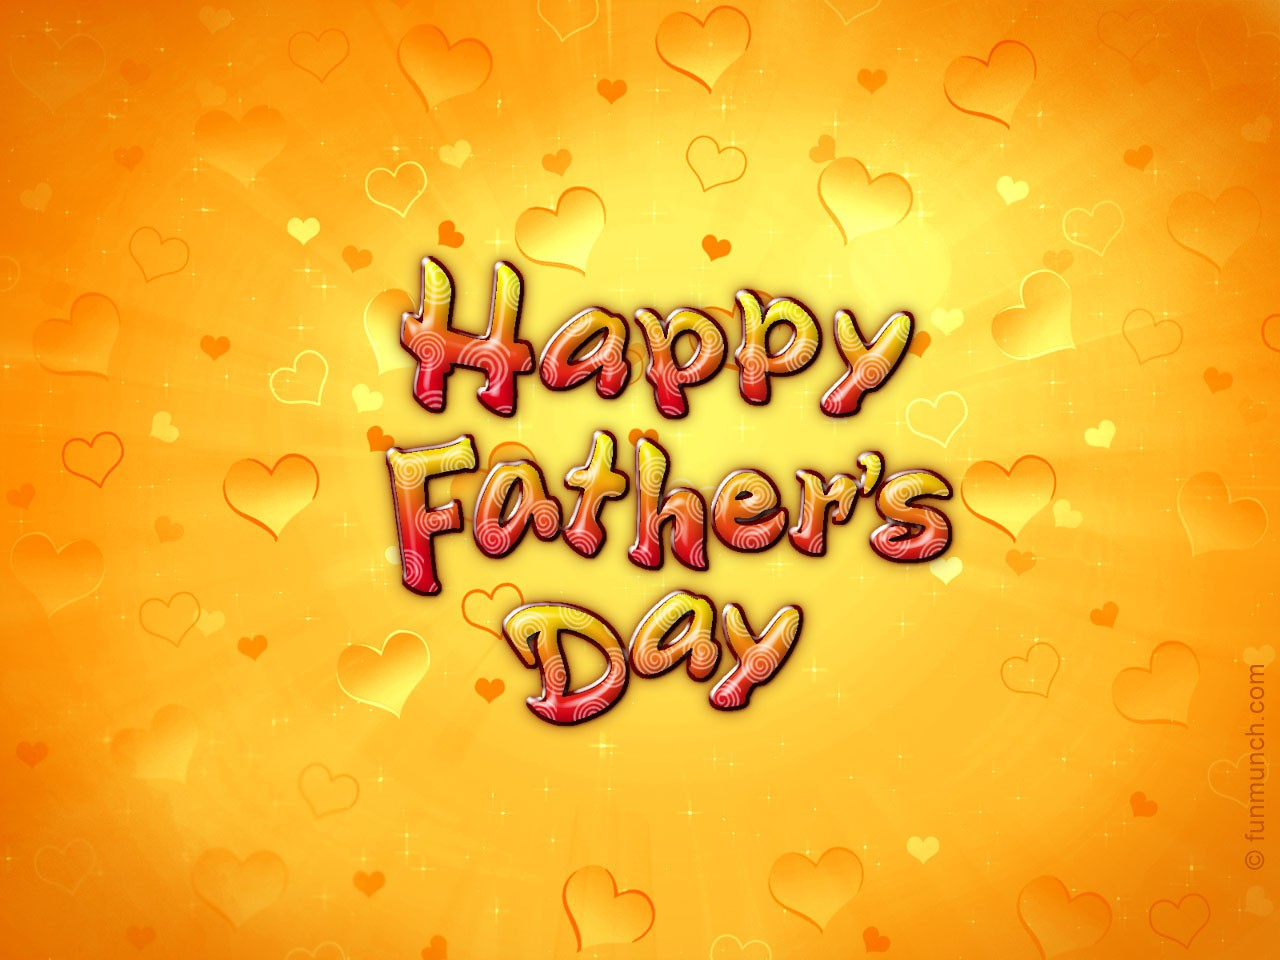 Happy Fathers Day Images Pictures Cards Pics Wallpapers and 1280x960 1280x960